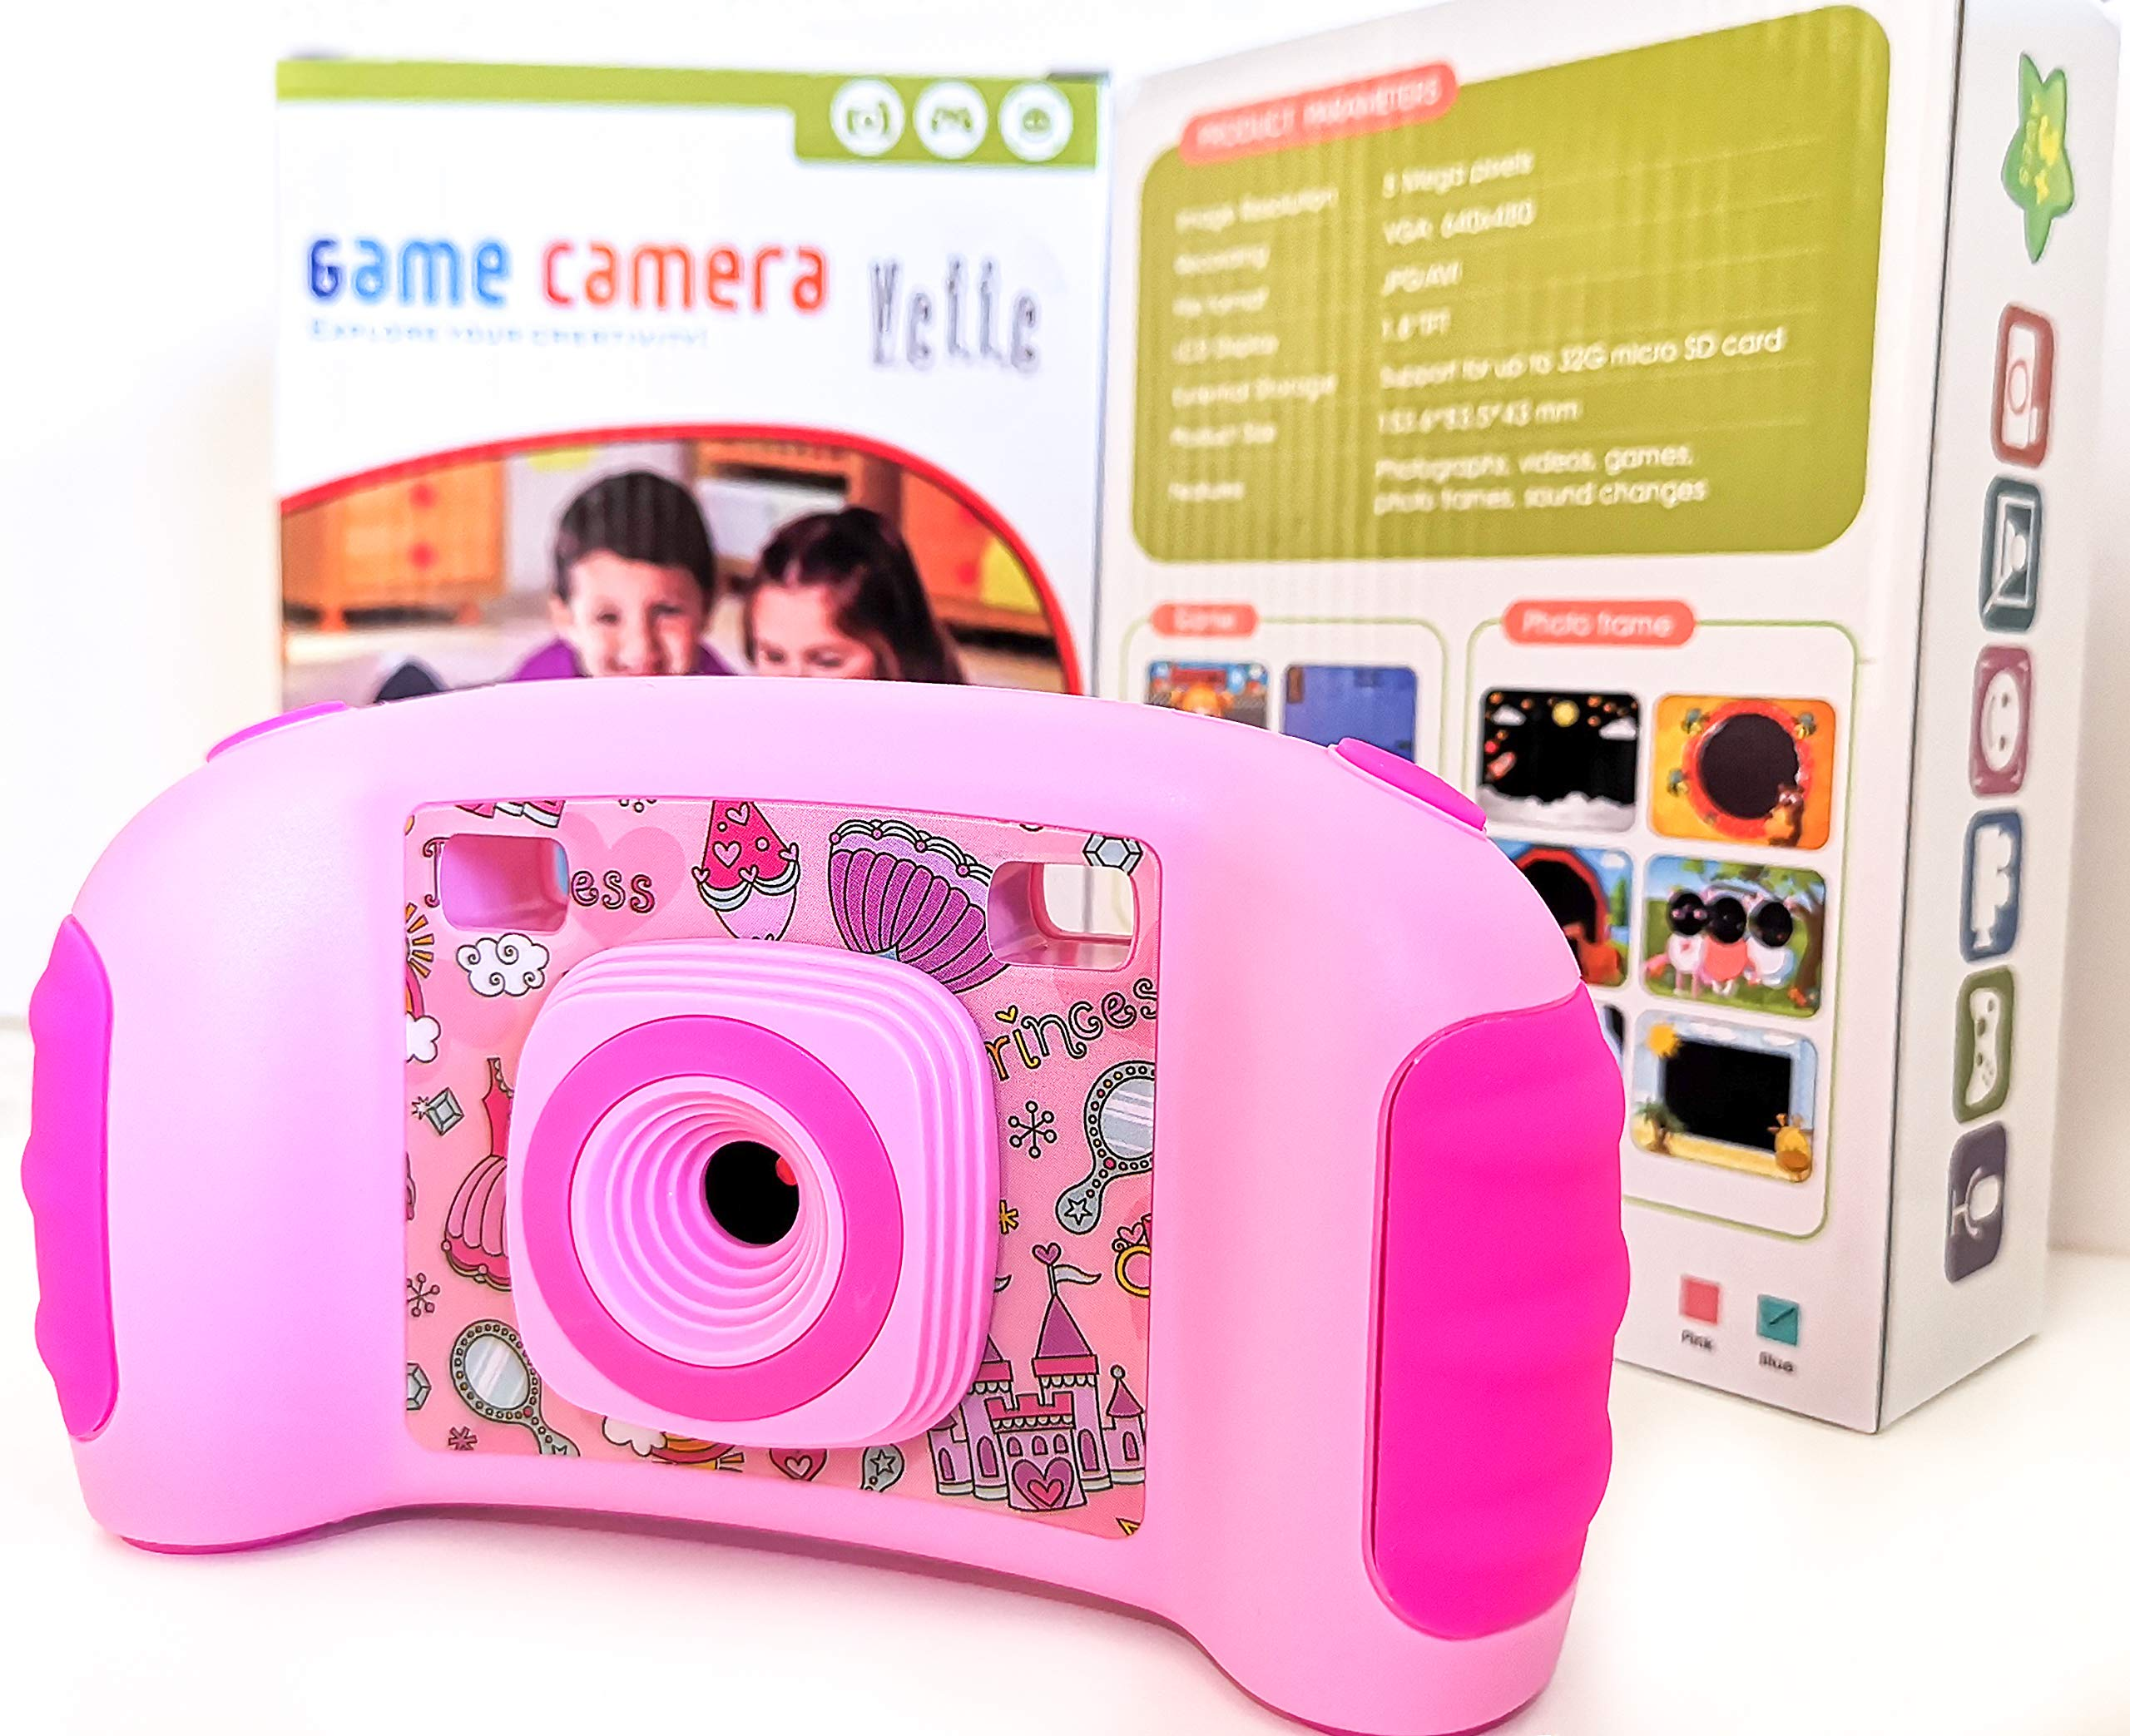 Vetté Digital Camera for Kids with 16GB MicroSD Card - Multifunctional Kids Camera - 2X Zoom, 720 HD Video Quality, 1.8 TFT LCD Screen,Games, Frames, Photo Editing and Voice Recorder Camera (Pink) by Vetté (Image #8)